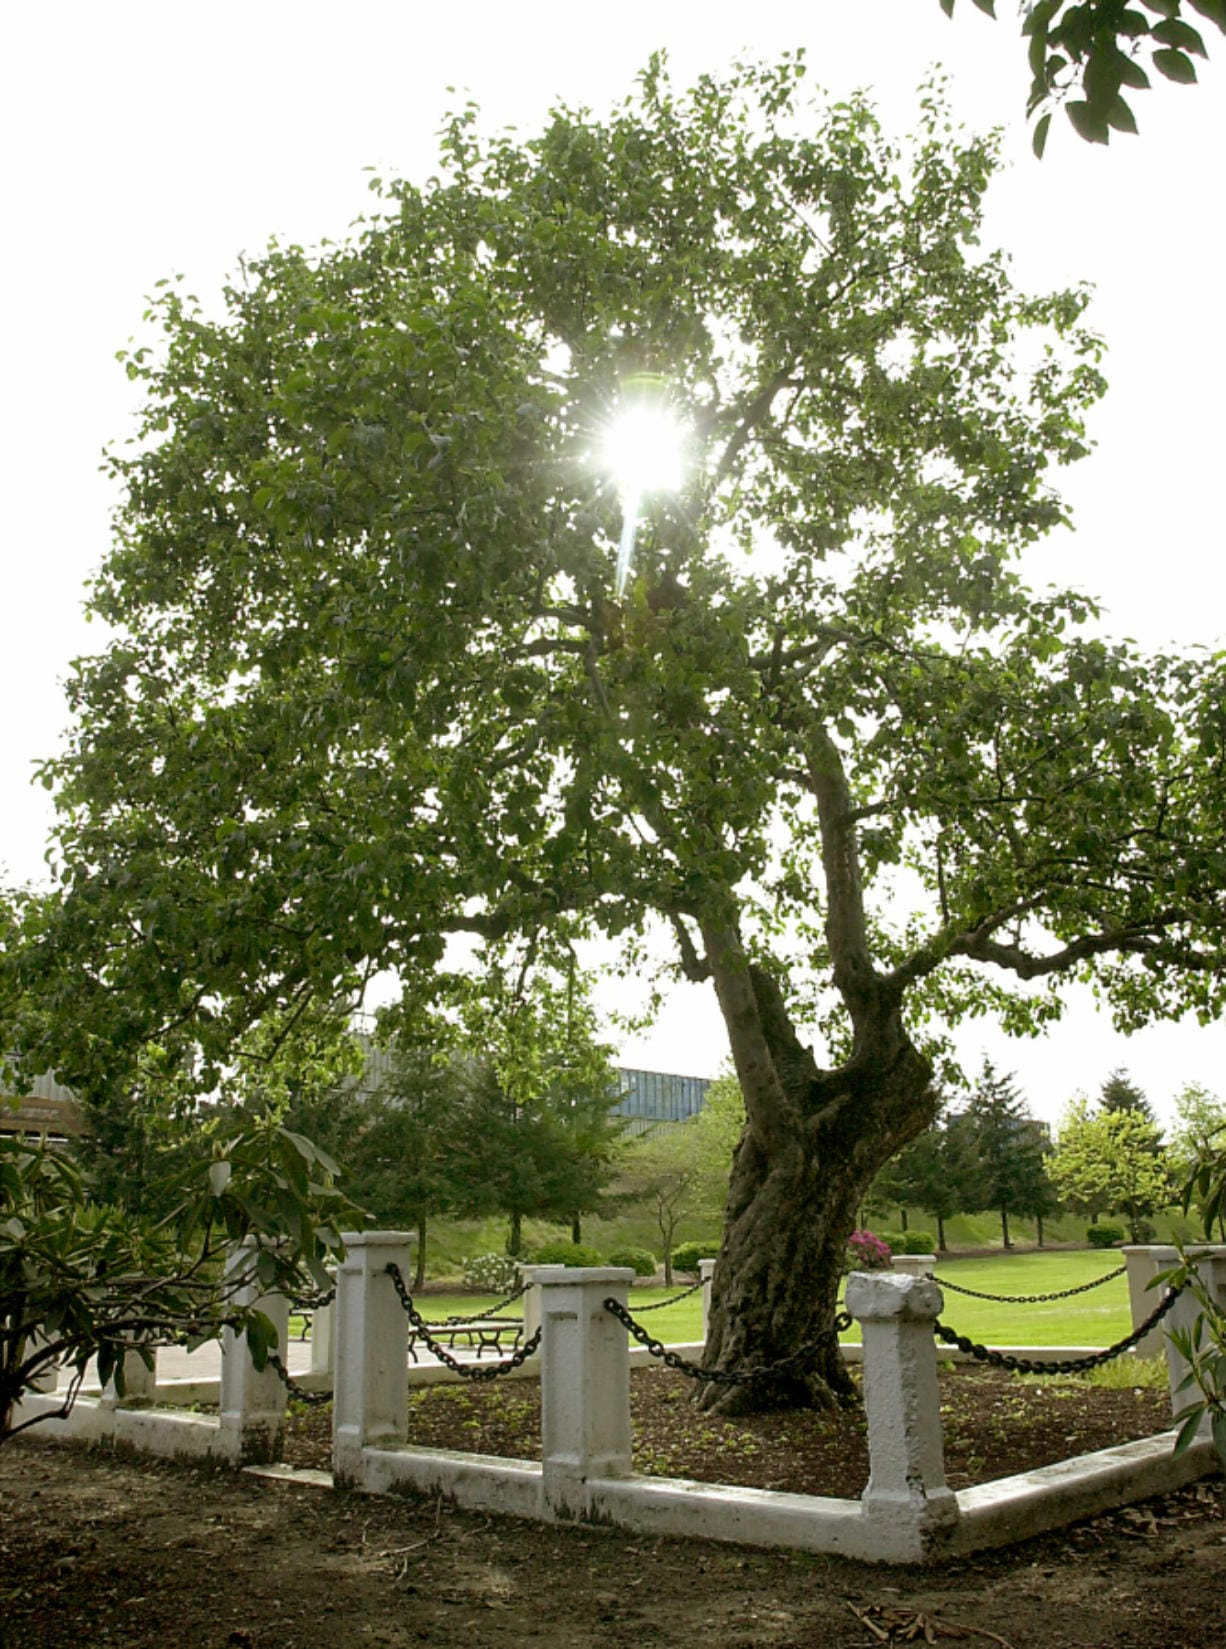 Sun filters through the branches of the Old Apple Tree in 2001. The Clark County History Museum is hosting an online memorial service of sorts for the tree, which died in June at 194 years old.